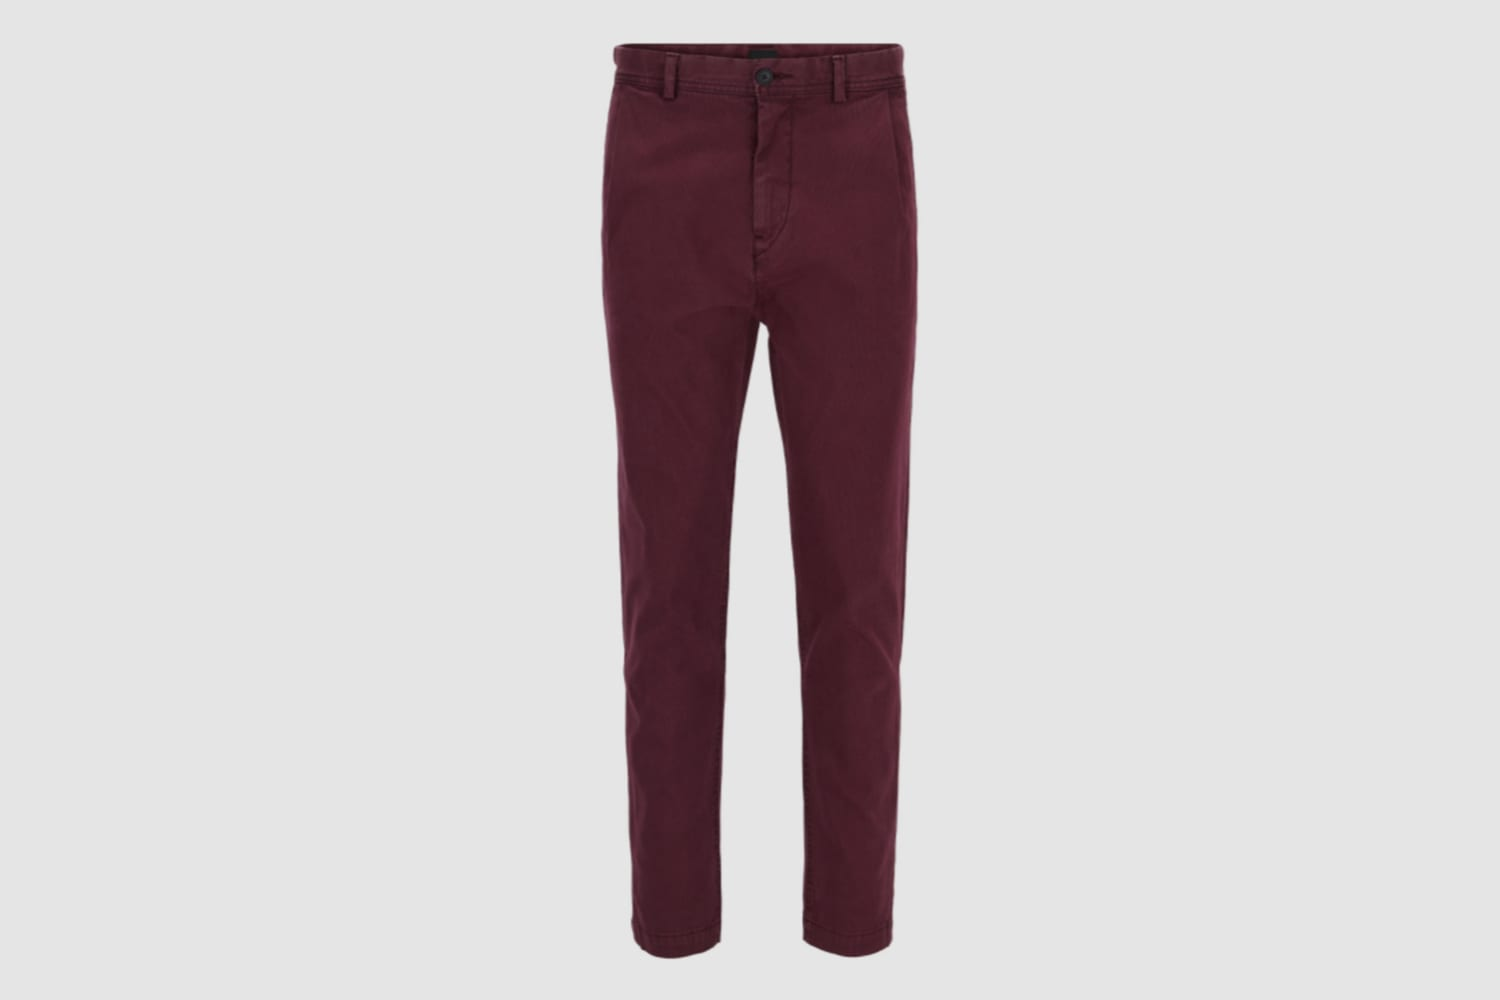 Hugo-Boss-burgundy-trousers